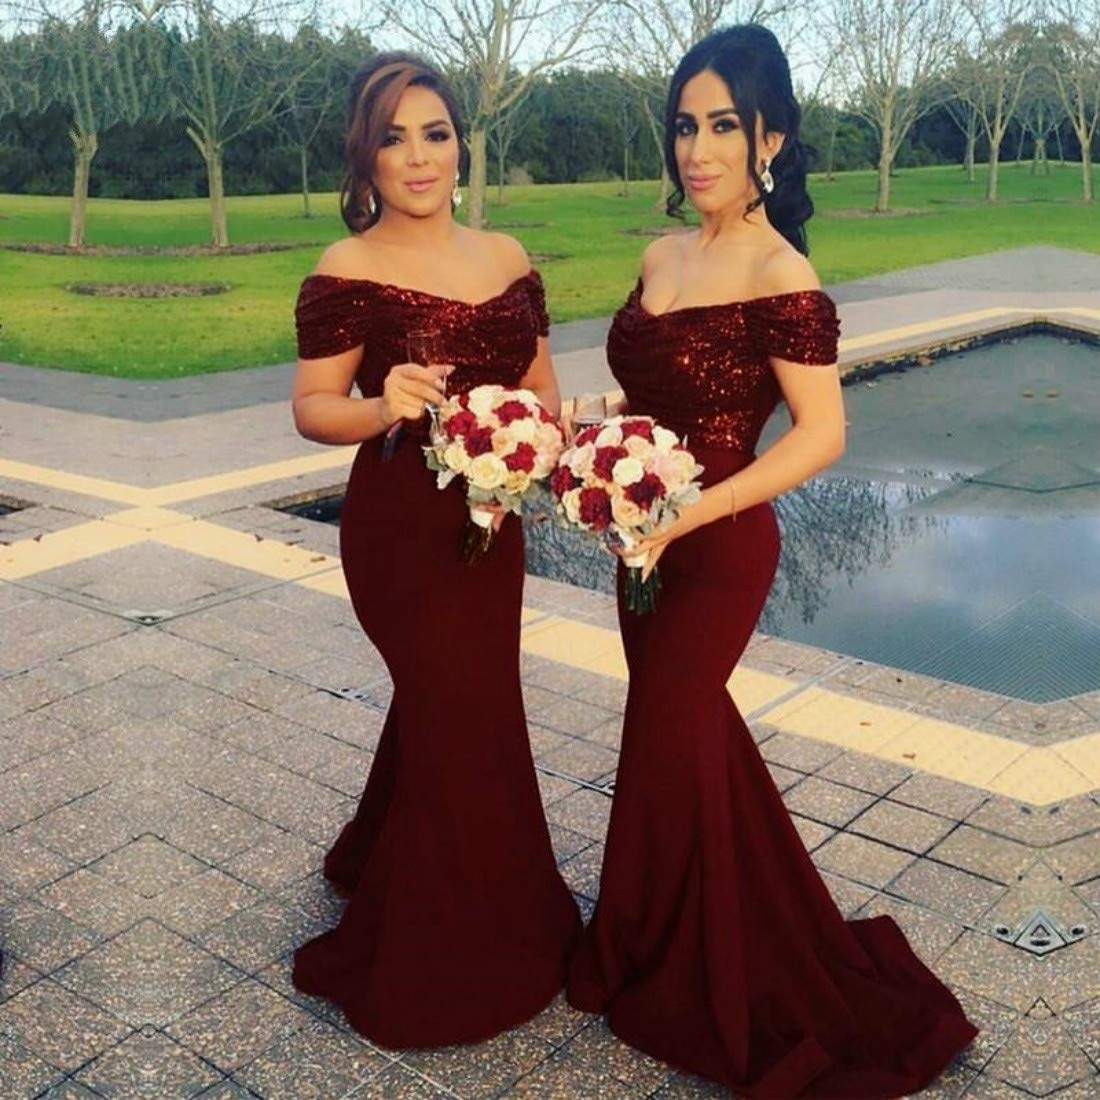 Women's Sequin Mermaid Bridesmaid Dresses Off Shoulder Wedding Guest Elegant Dress Women For Party Gowns Robe De Soiree Mariee